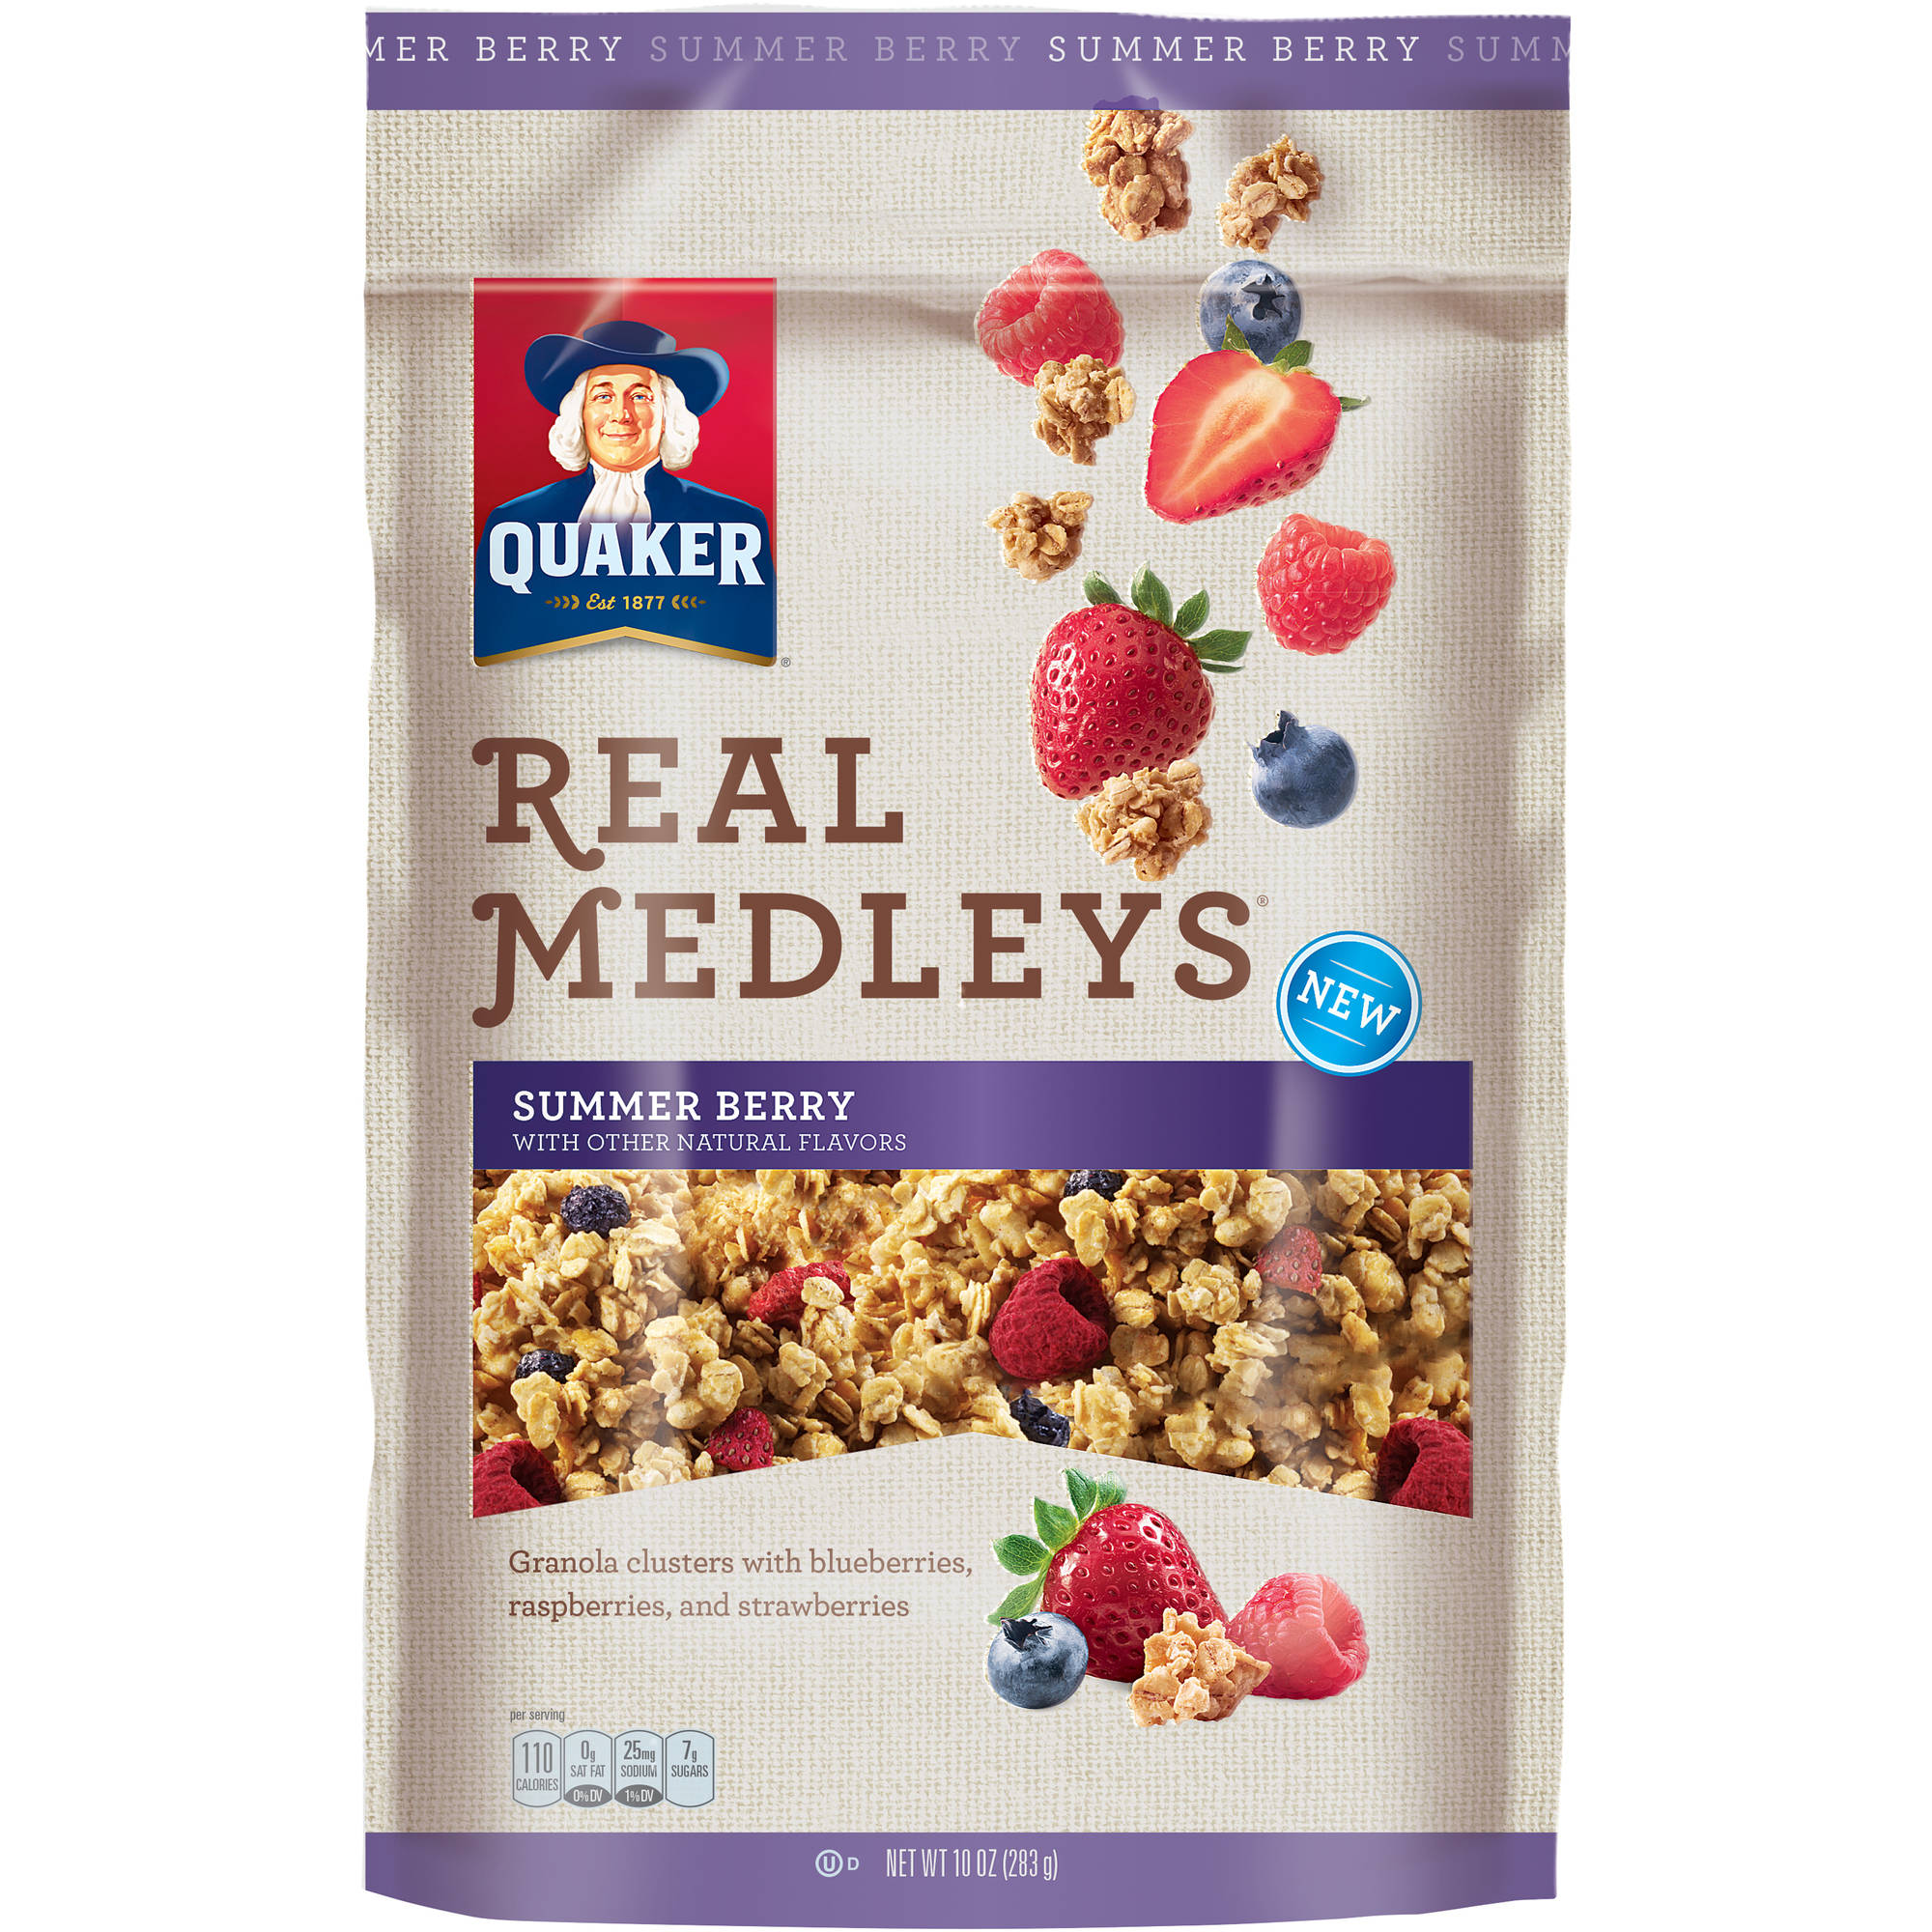 Quaker® Real Medleys® Summer Berry Granola Cereal 10 oz. Pouch